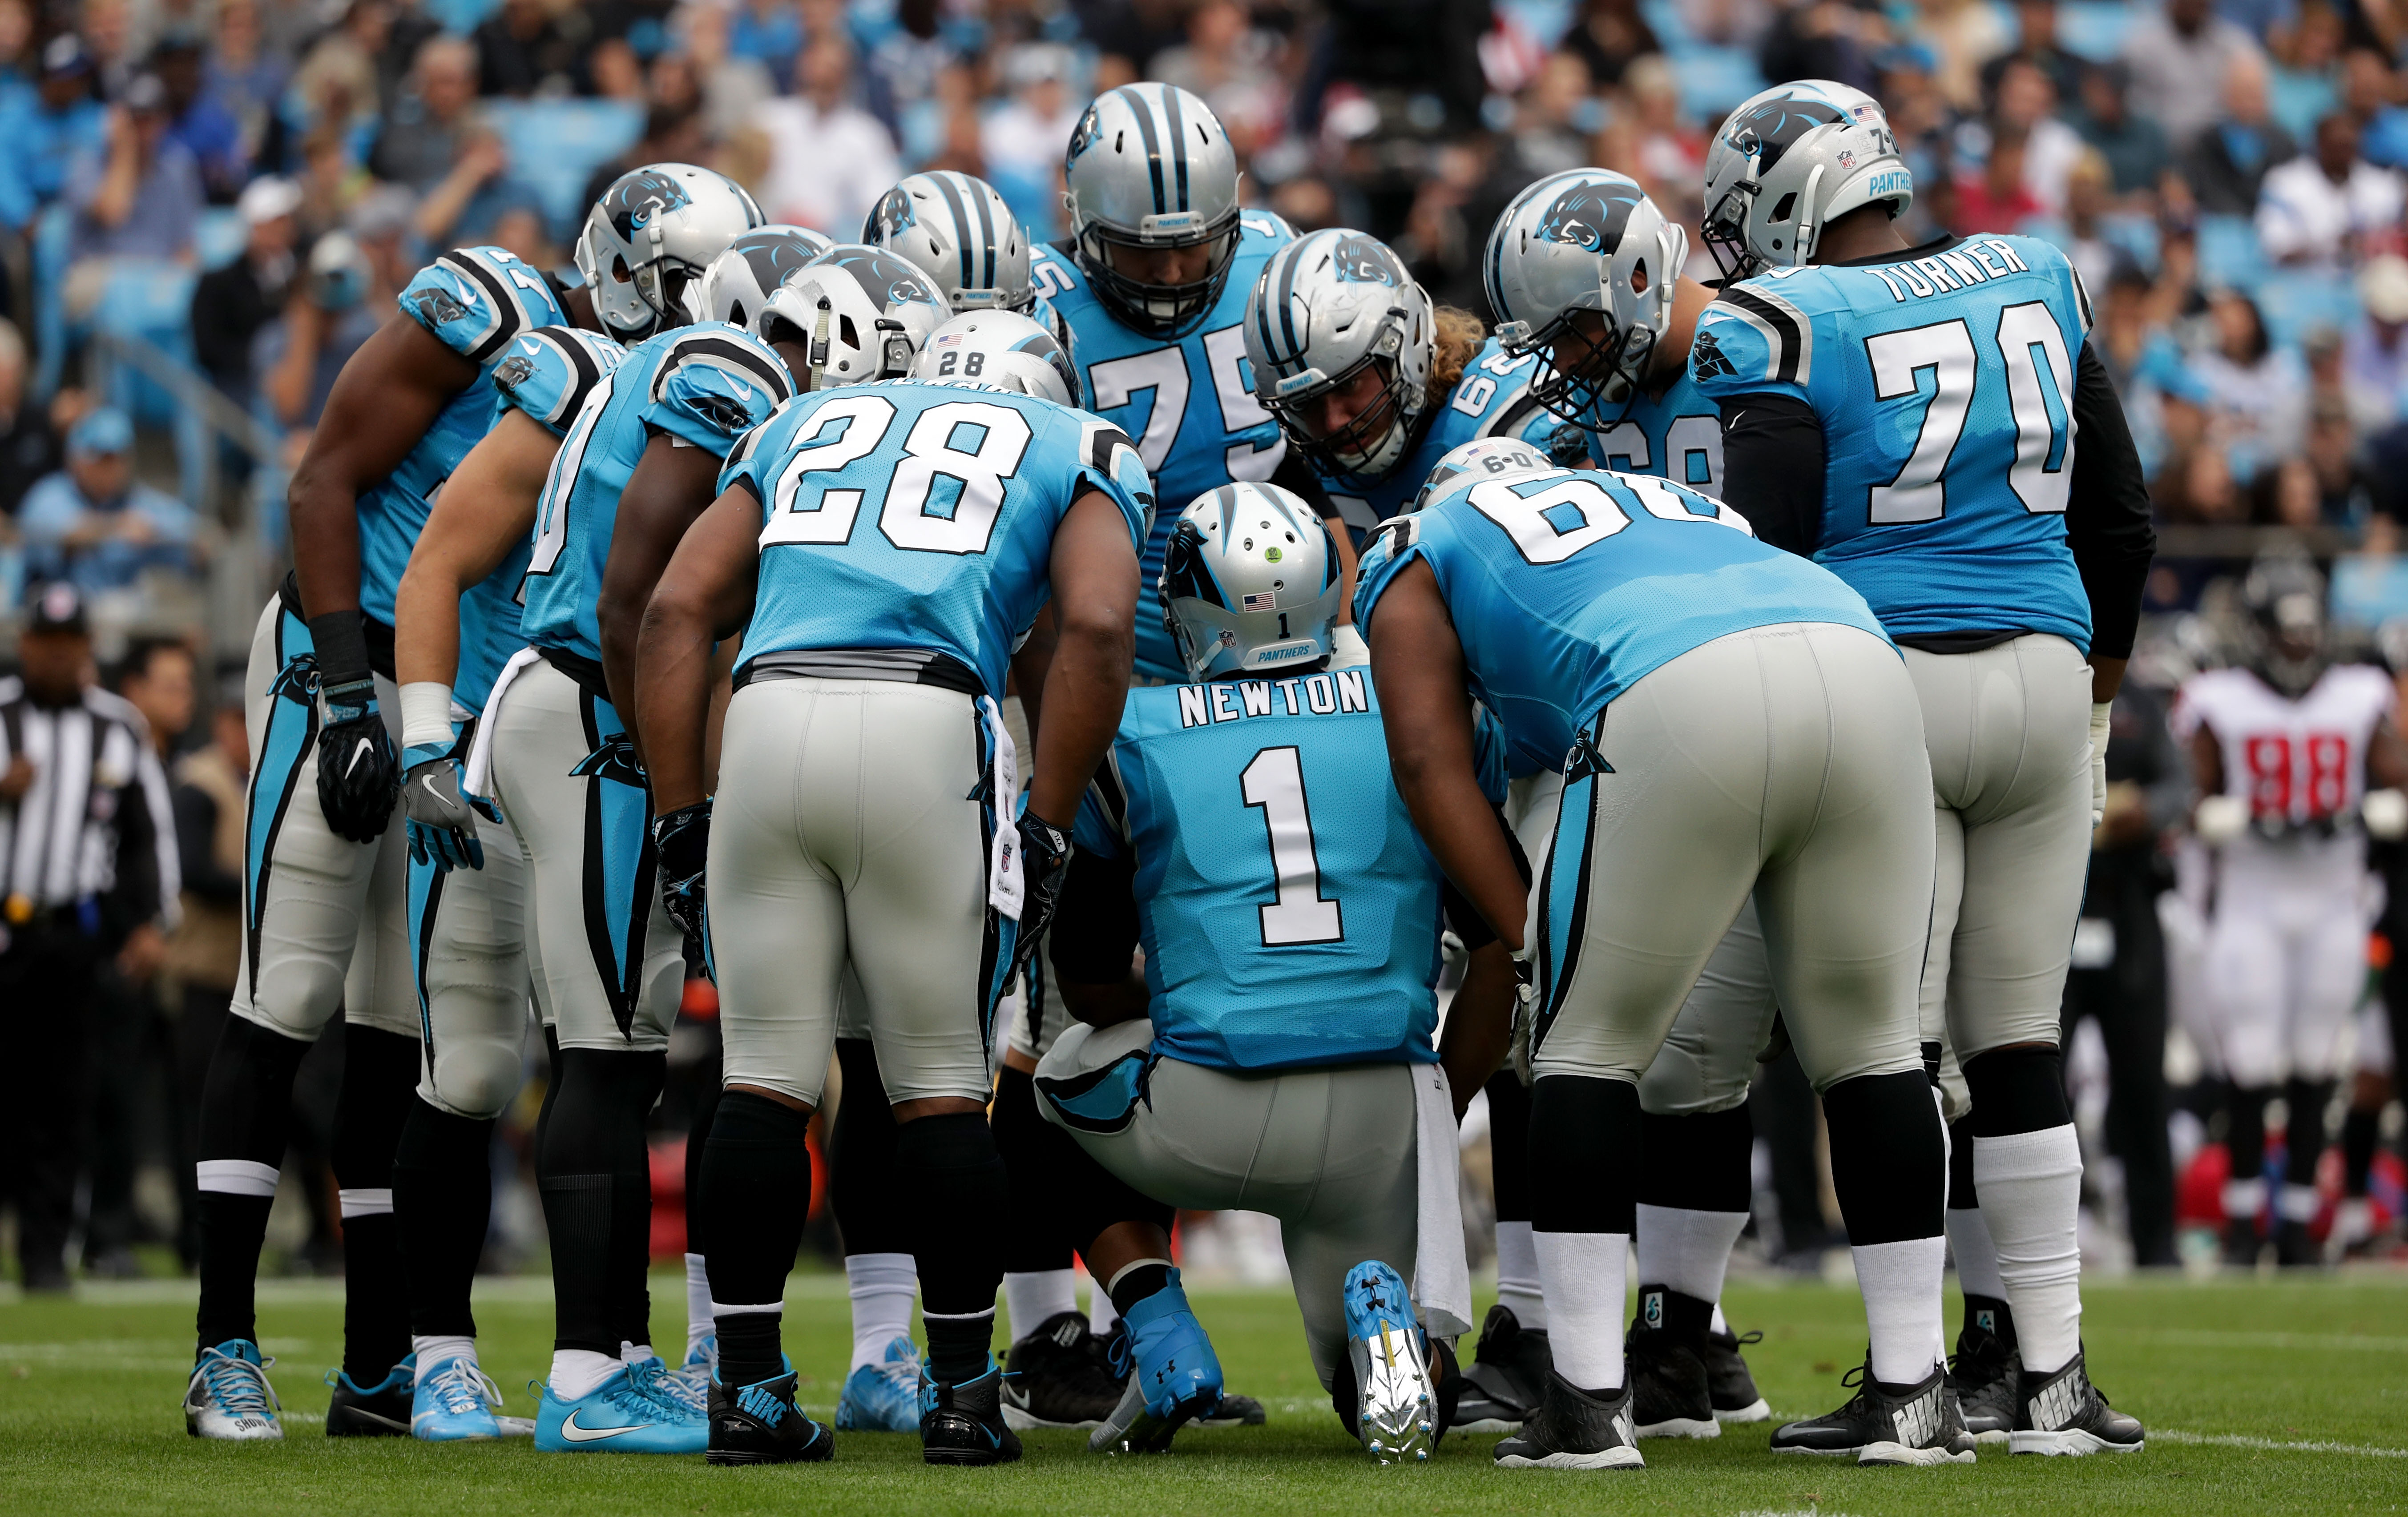 Carolina Panthers: Takeaways from Week 9 win over Falcons